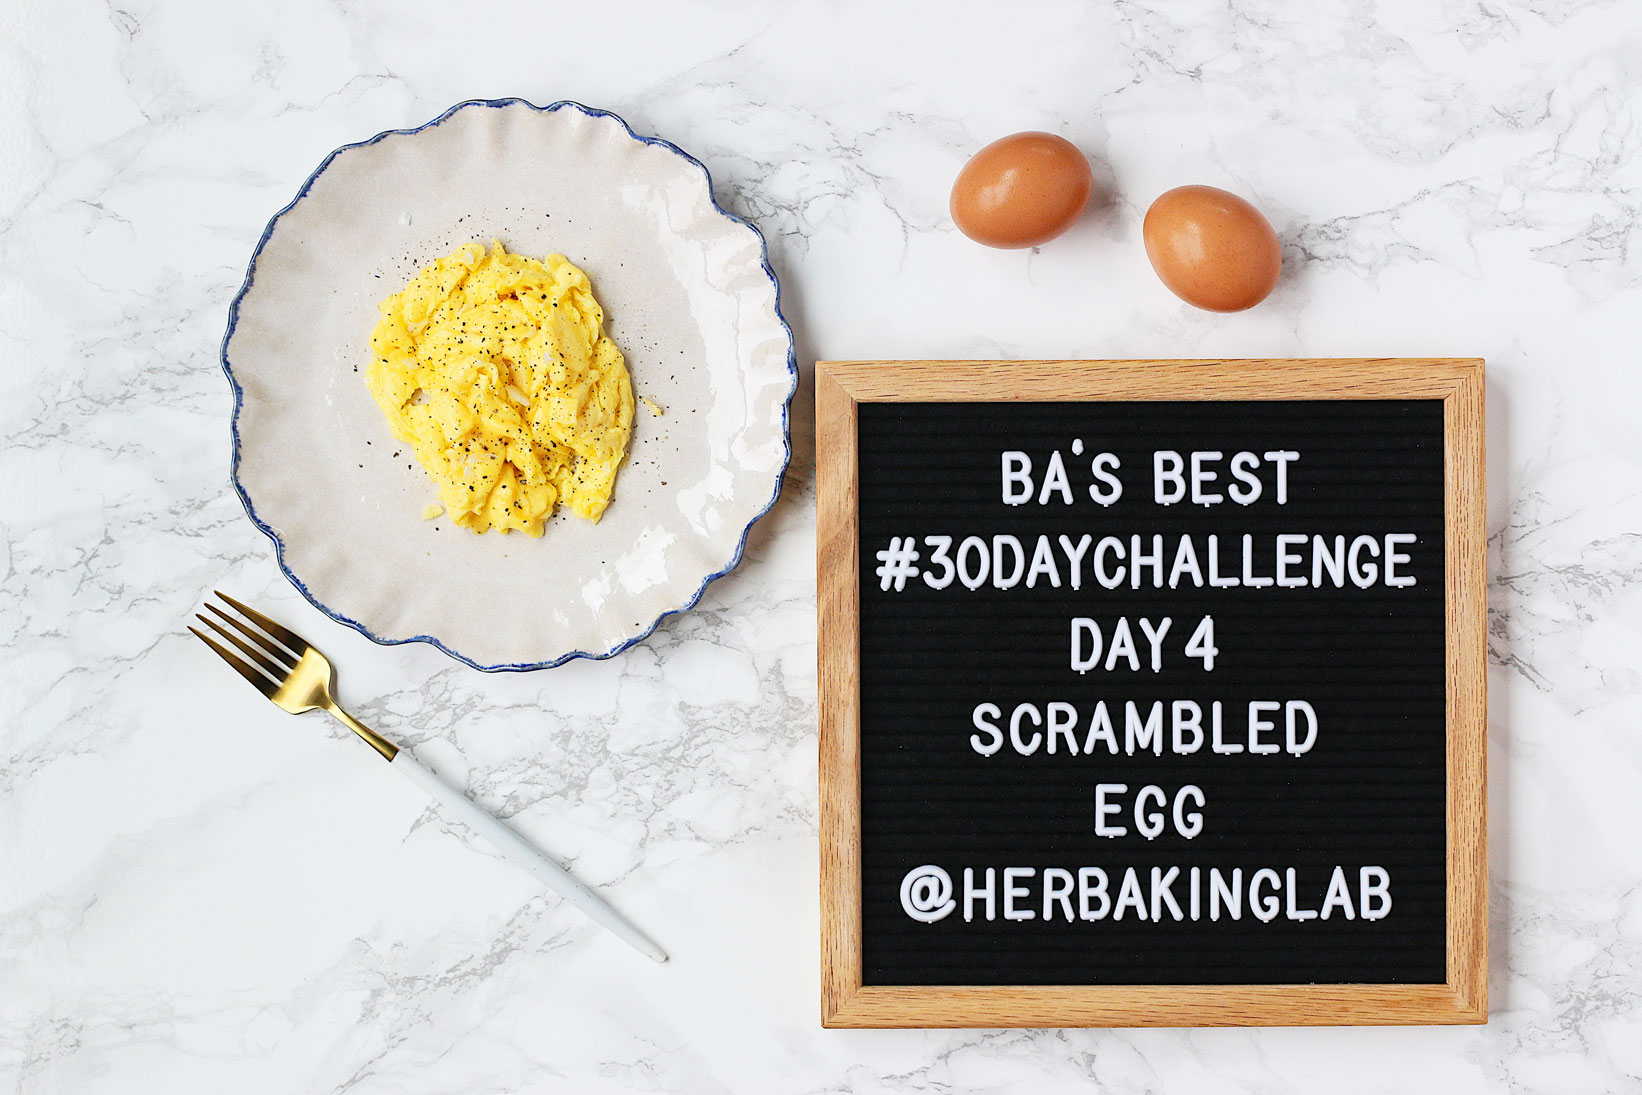 #ba30daychallenge-bon-appetit-best-recipes-day-4-scrambled-egg